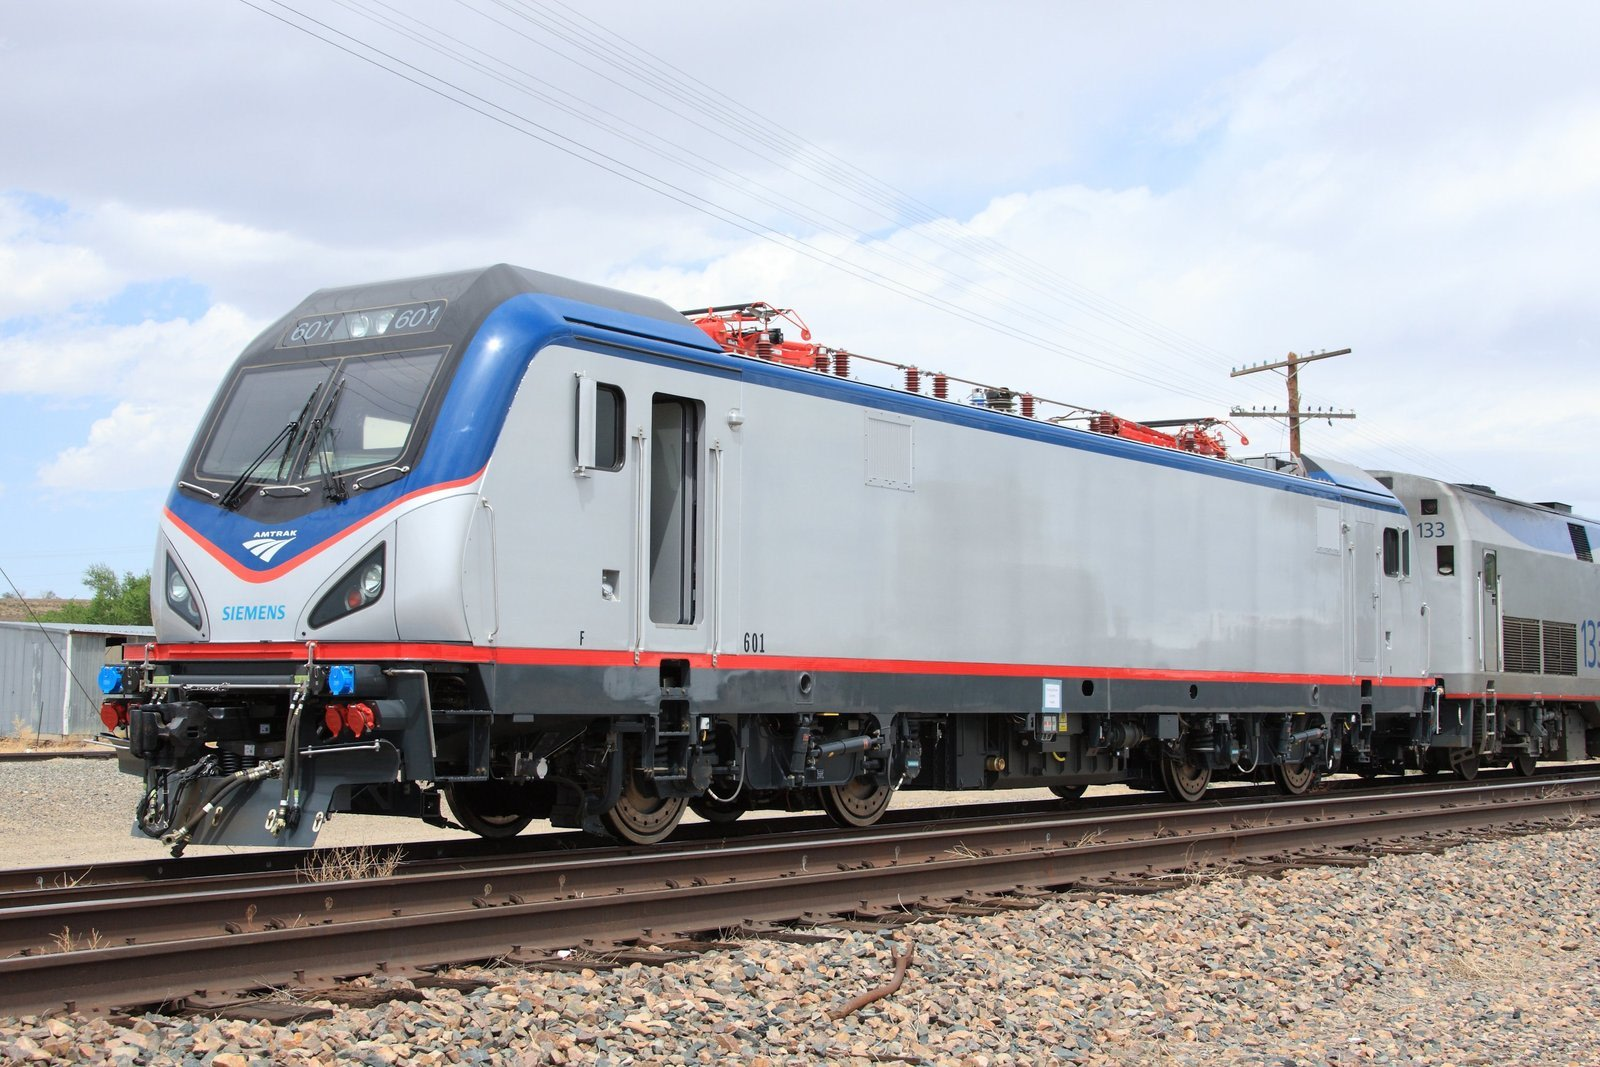 Amtrak ACS-64 601